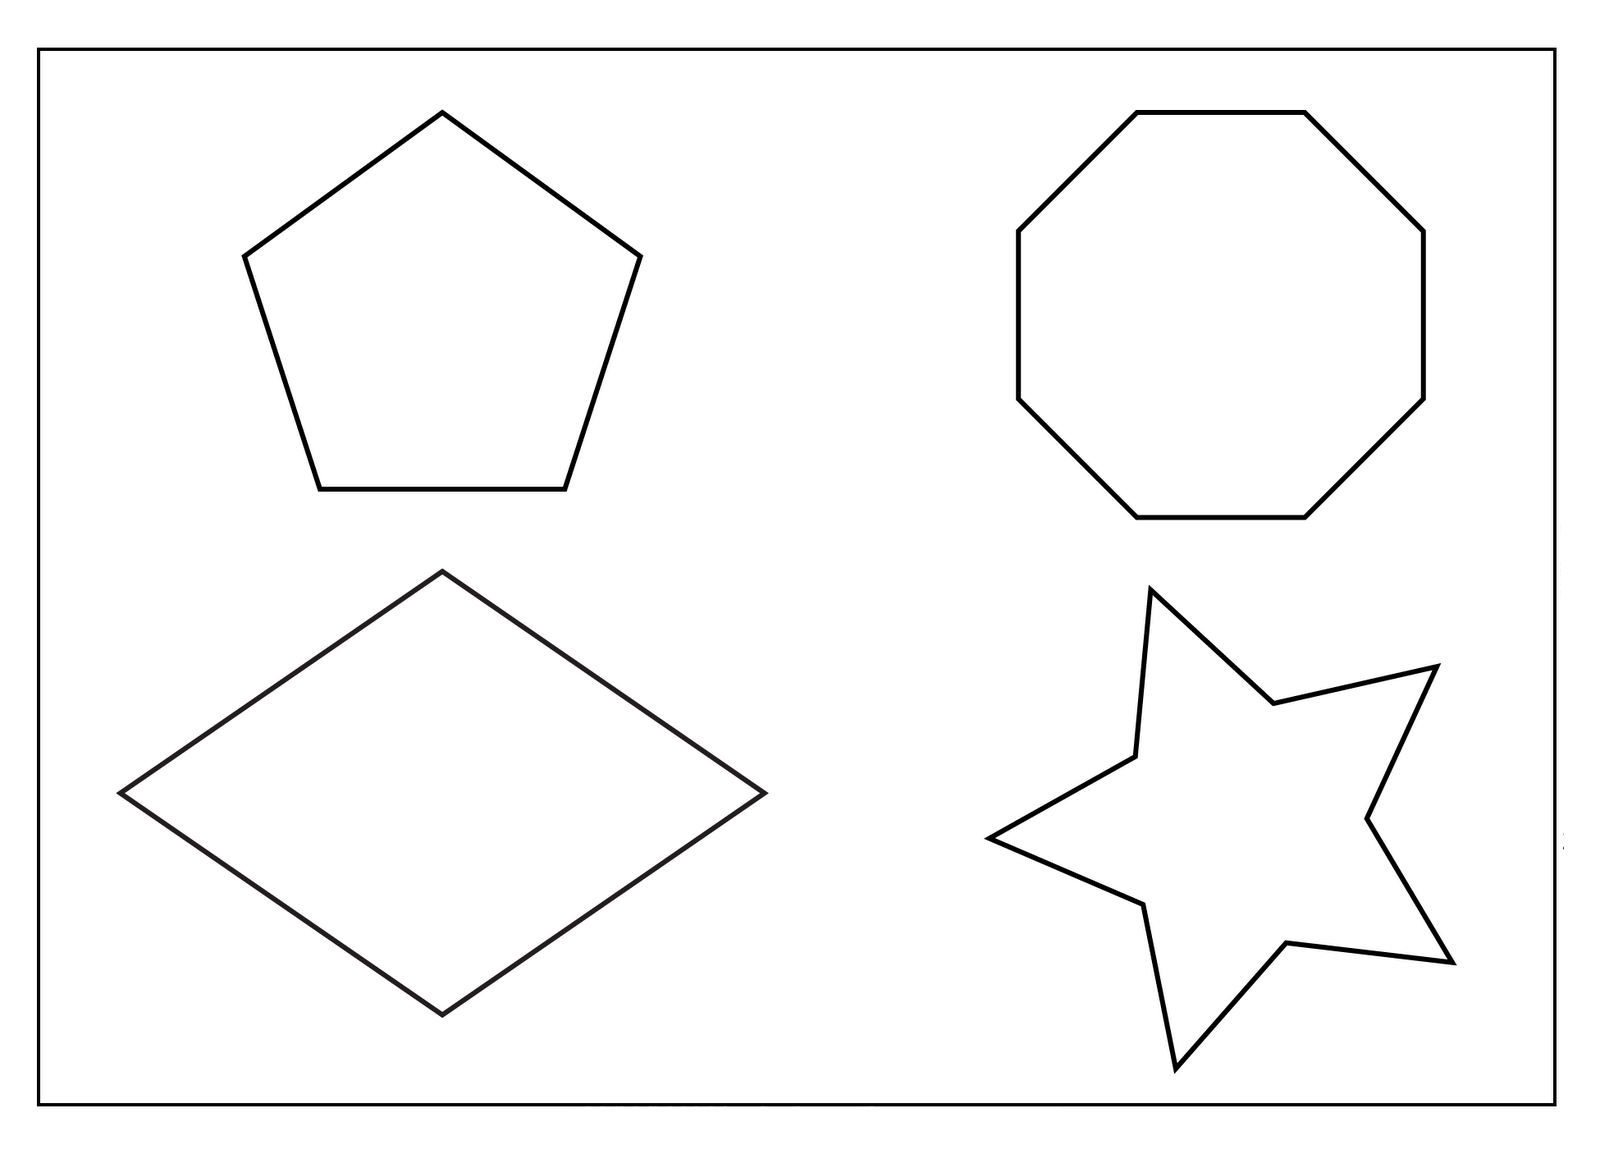 Shapes Coloring Pages 05 Coloring Page - Free Shapes Coloring ... | 1154x1600